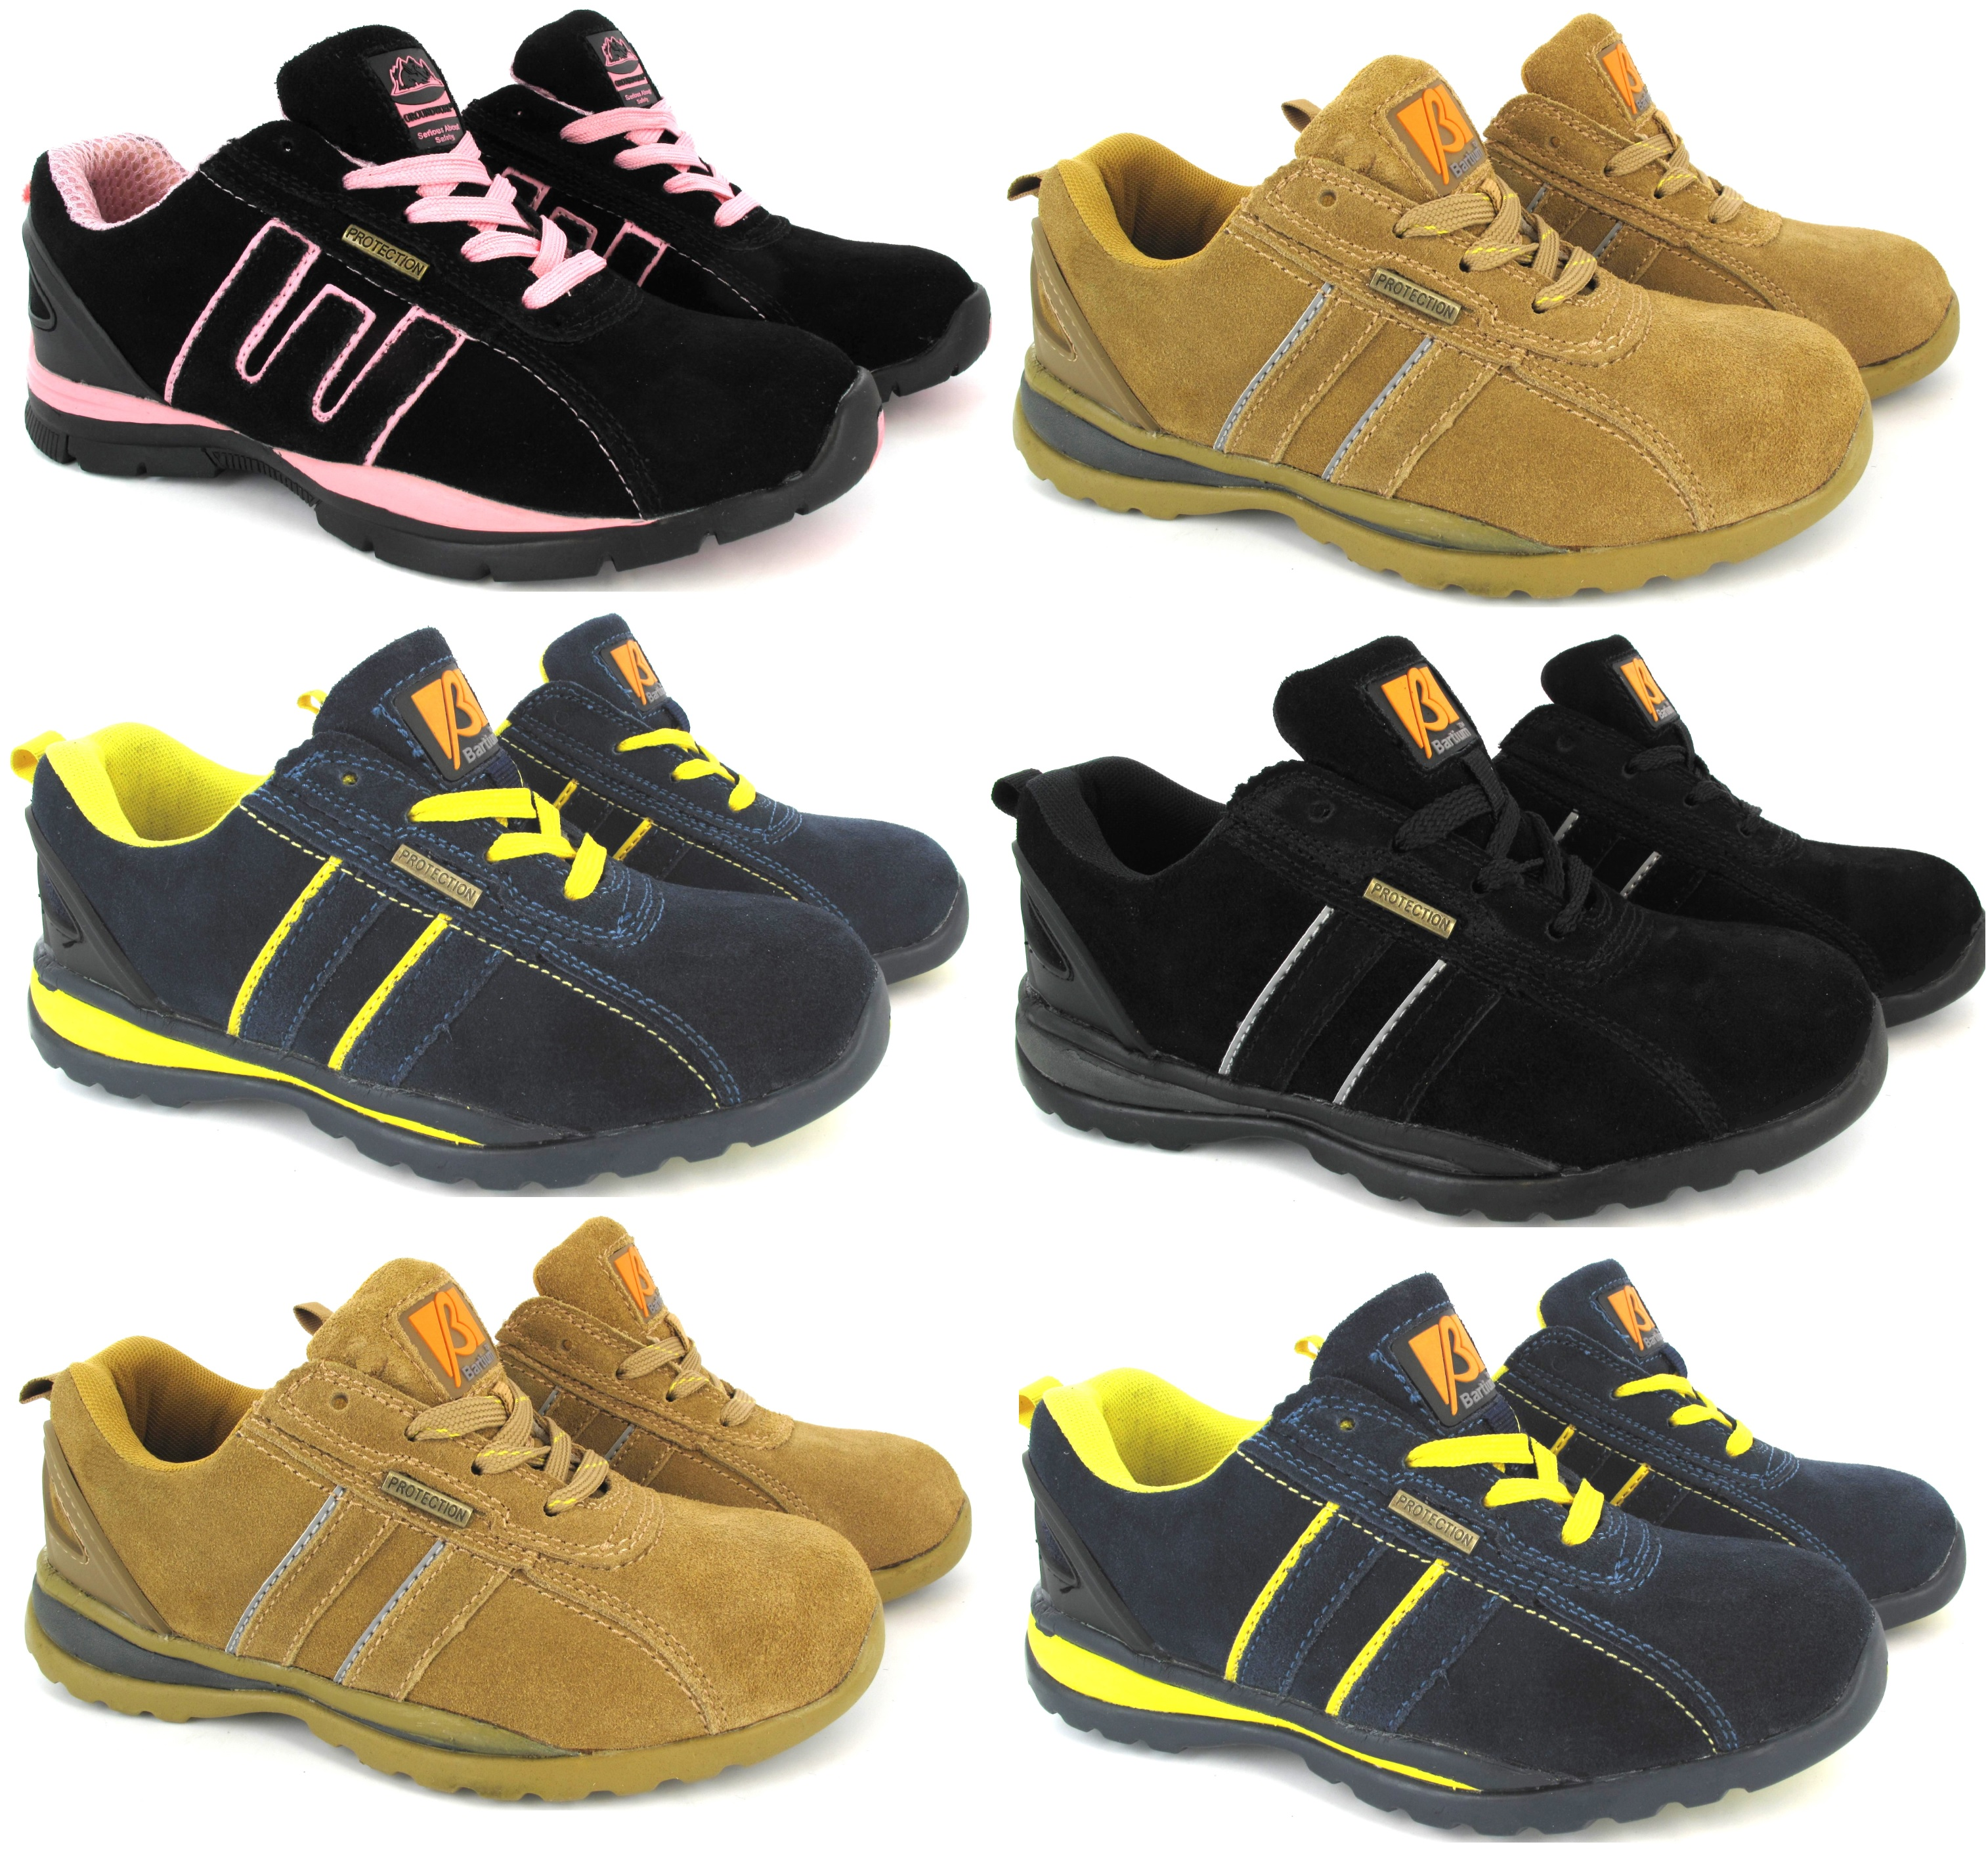 f553bfadff Sentinel WOMANS SAFETY TRAINER LIGHTWEIGHT STEEL TOE CAP LEATHER WORK  OFFICE SHOES BOOTS